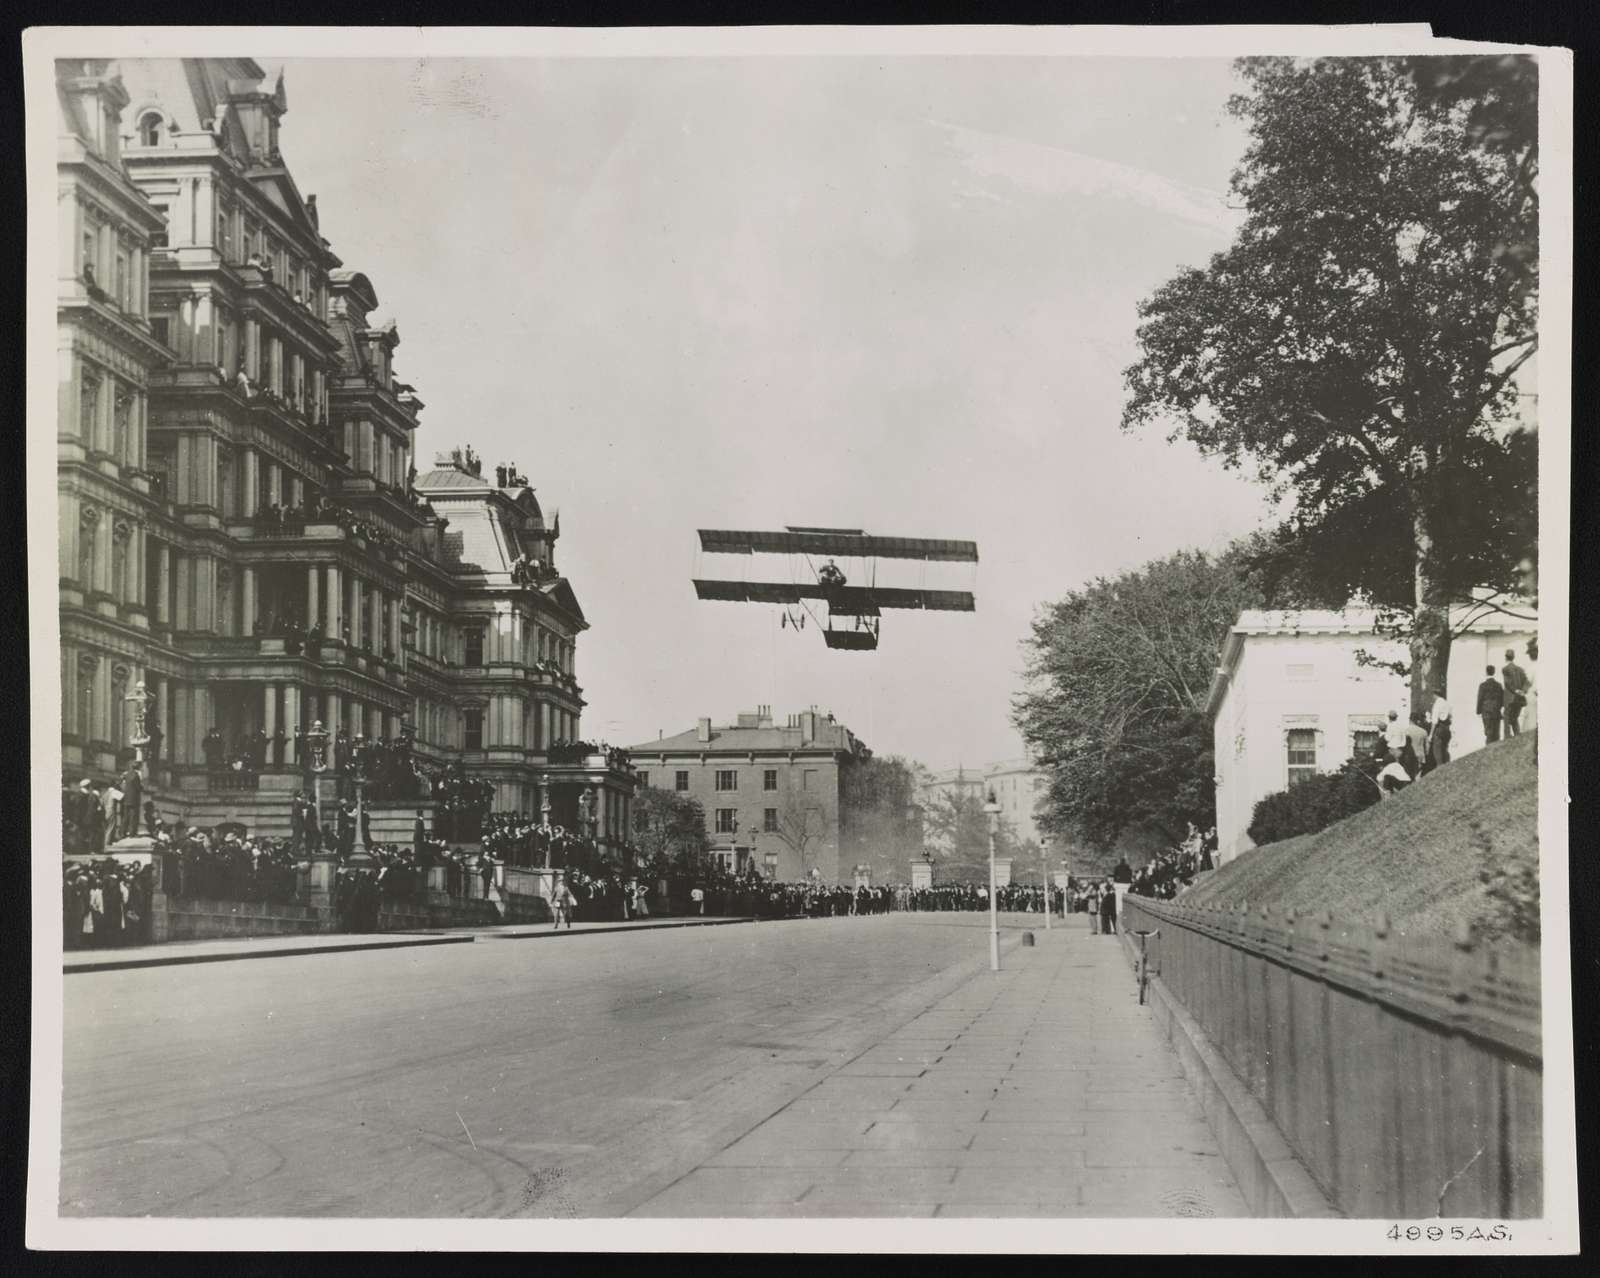 Claude Graham White [i.e. Grahame-White] flying his Farman biplane along W. Executive Ave., Washington, D.C., Oct. 14, 1910